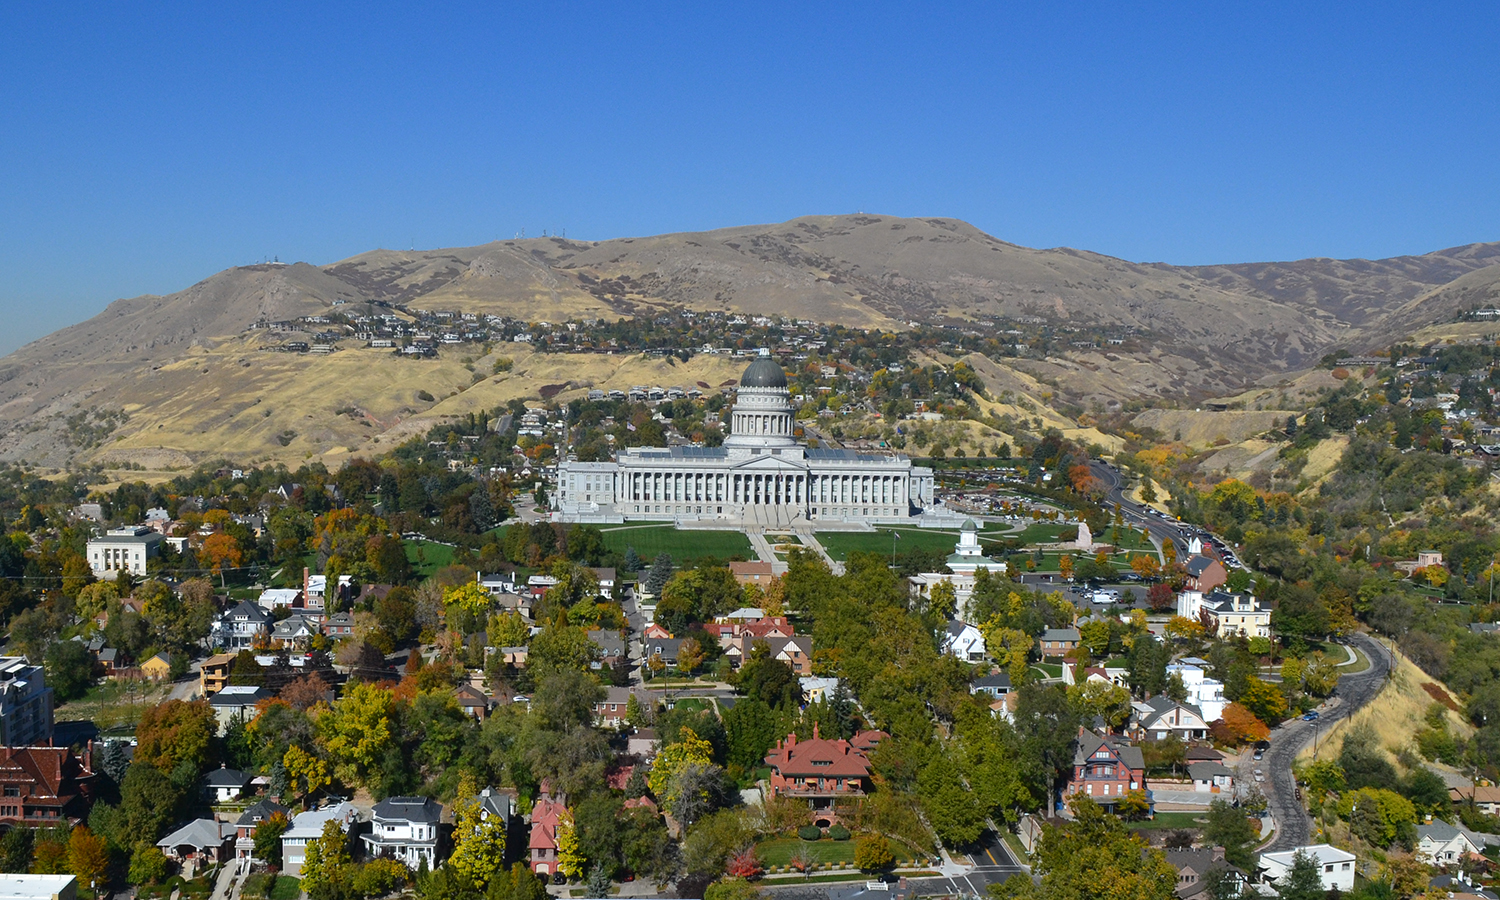 Utah Leaders Hope To Use New Tax Law To Create 'Opportunity Zones' In Poor Areas